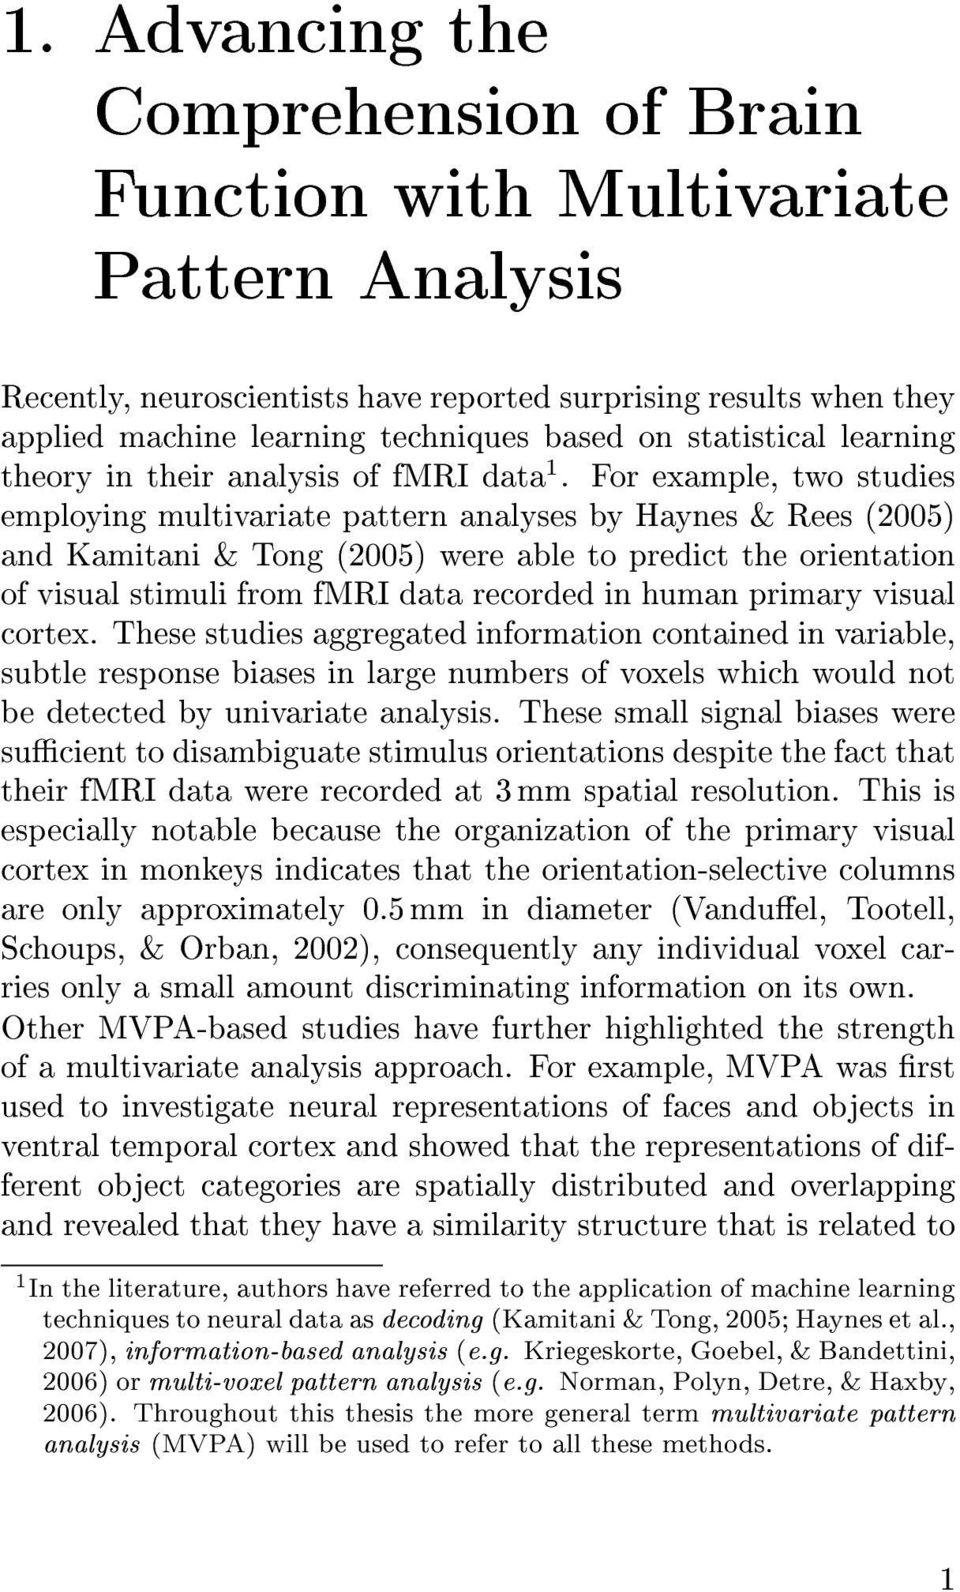 For example, two studies employing multivariate pattern analyses by Haynes & Rees (2005) and Kamitani & Tong (2005) were able to predict the orientation of visual stimuli from fmri data recorded in